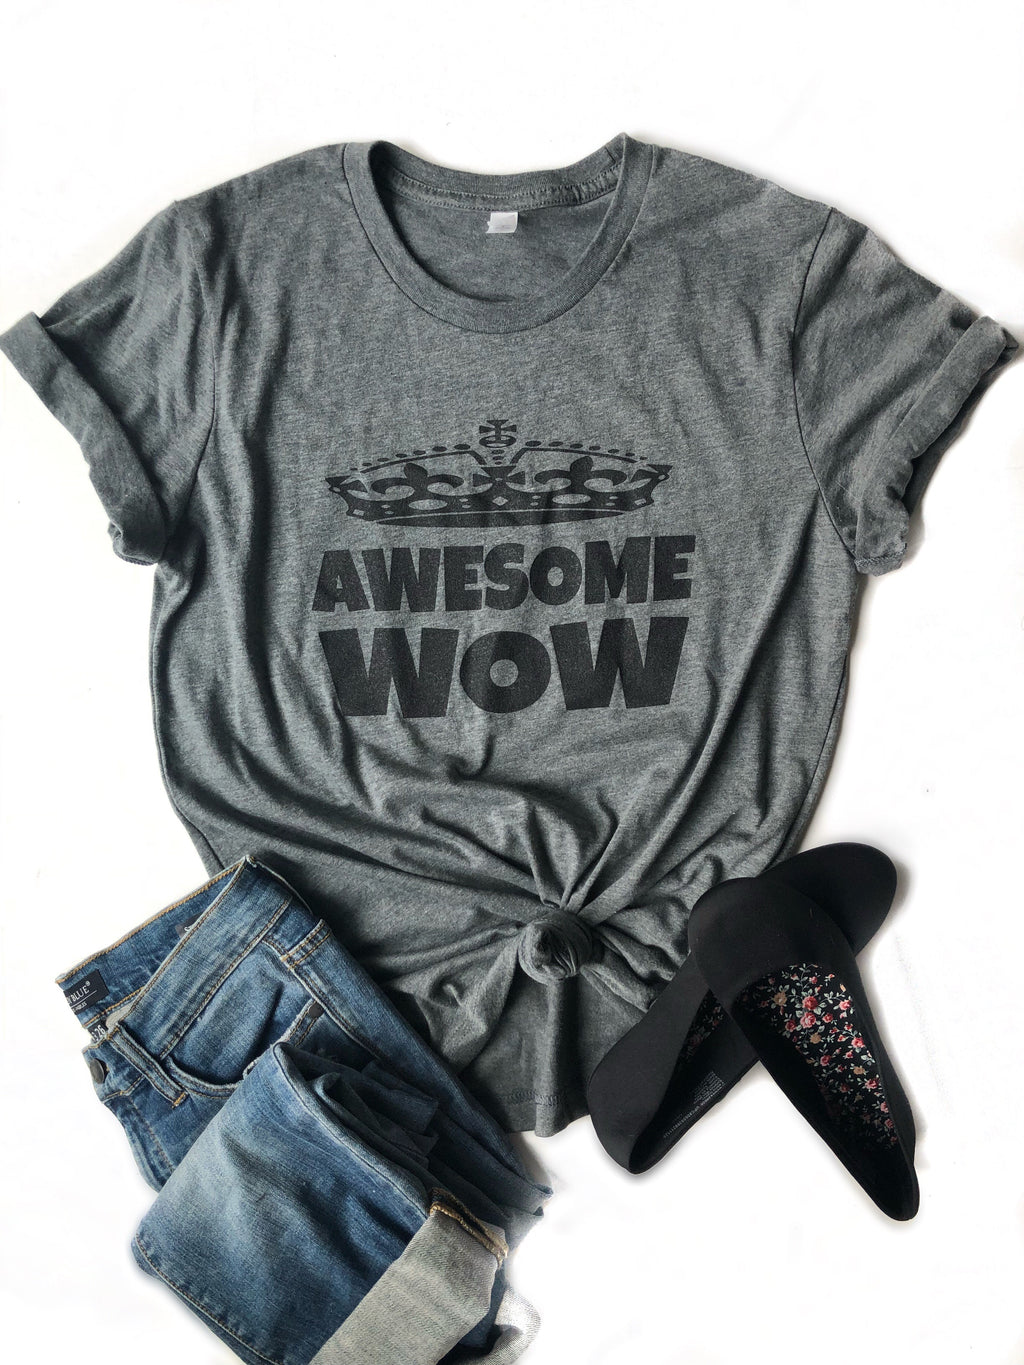 Awesome Wow Graphic Tee in Charcoal